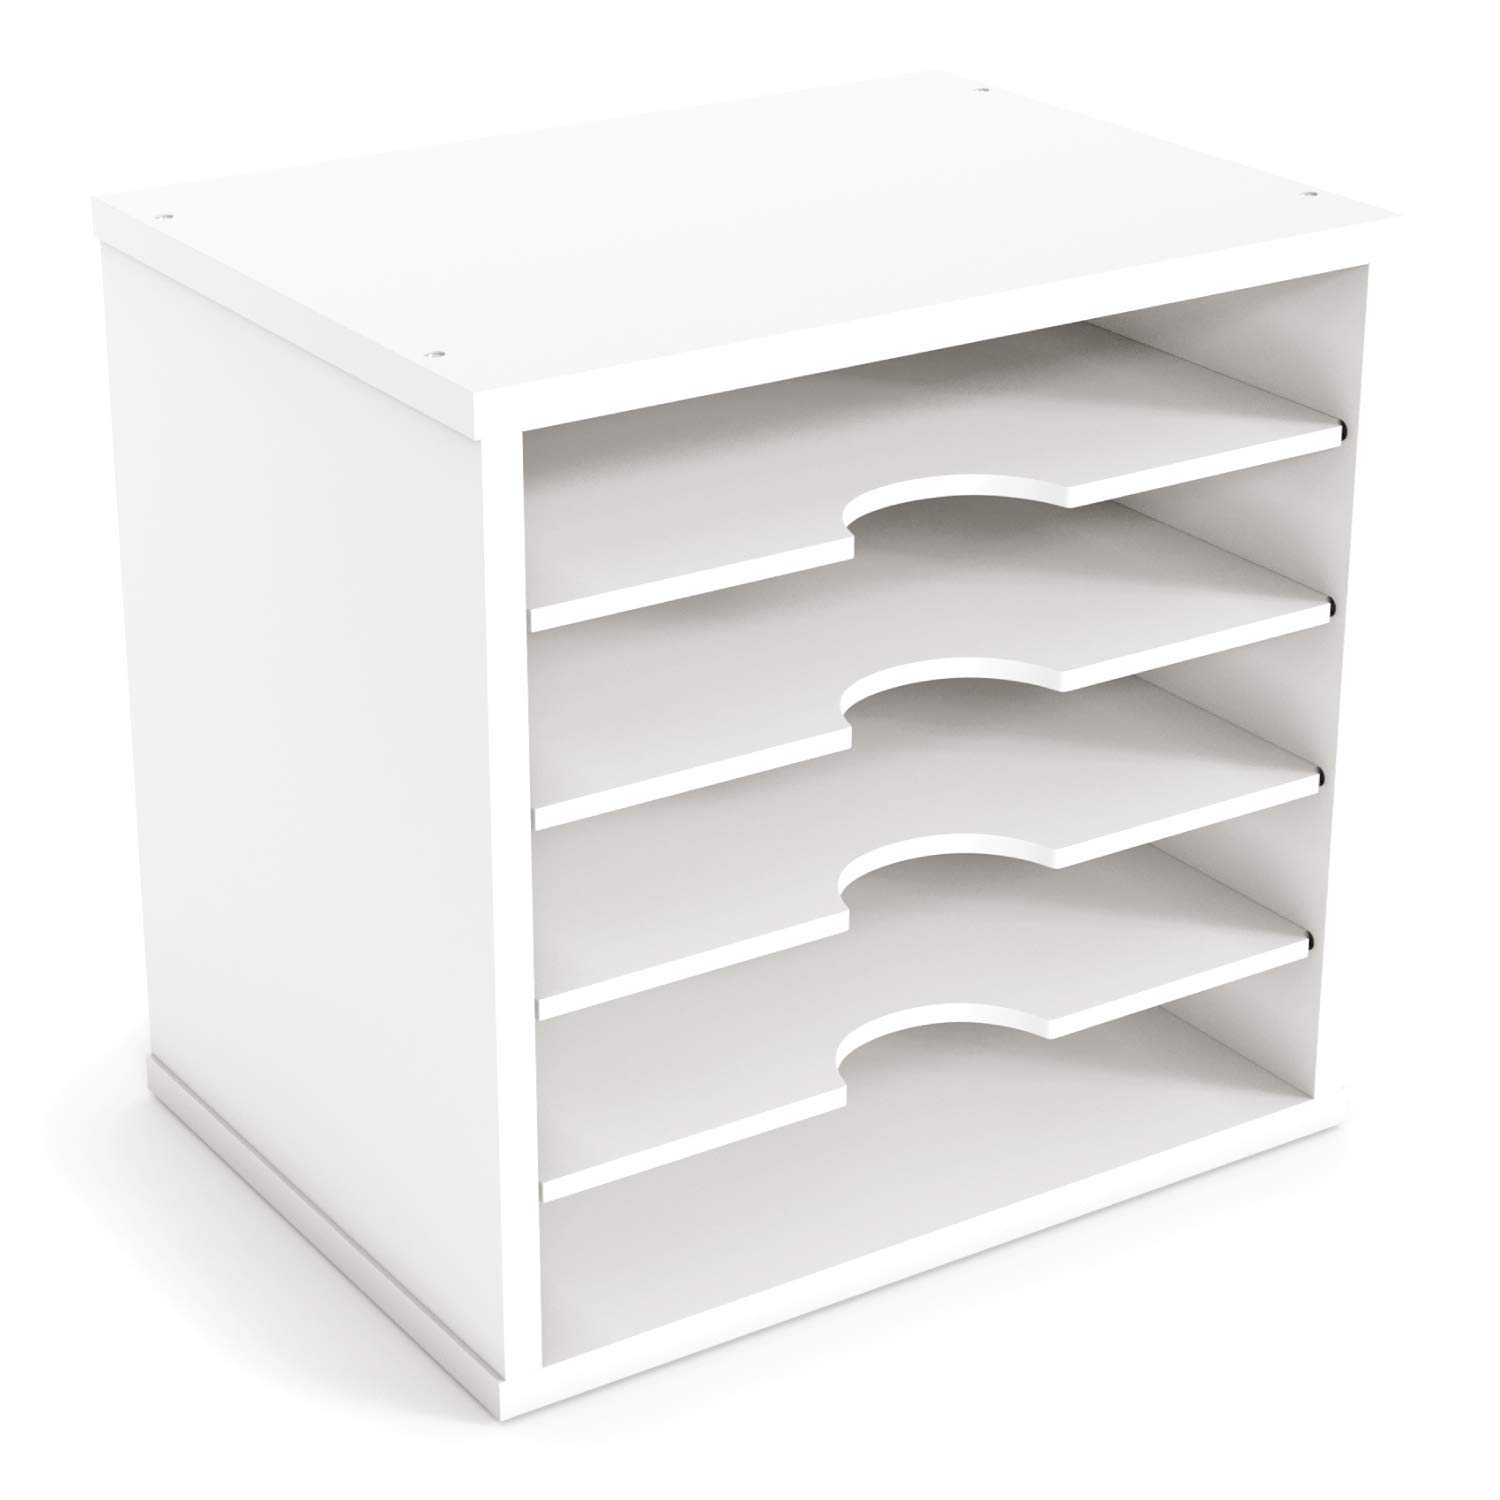 "Ballucci File Organizer Paper Sorter, 5 Tier Adjustable Shelves Office Desk  Organizer, 12 1/2"" X 9 1/4"" X 12"", White"